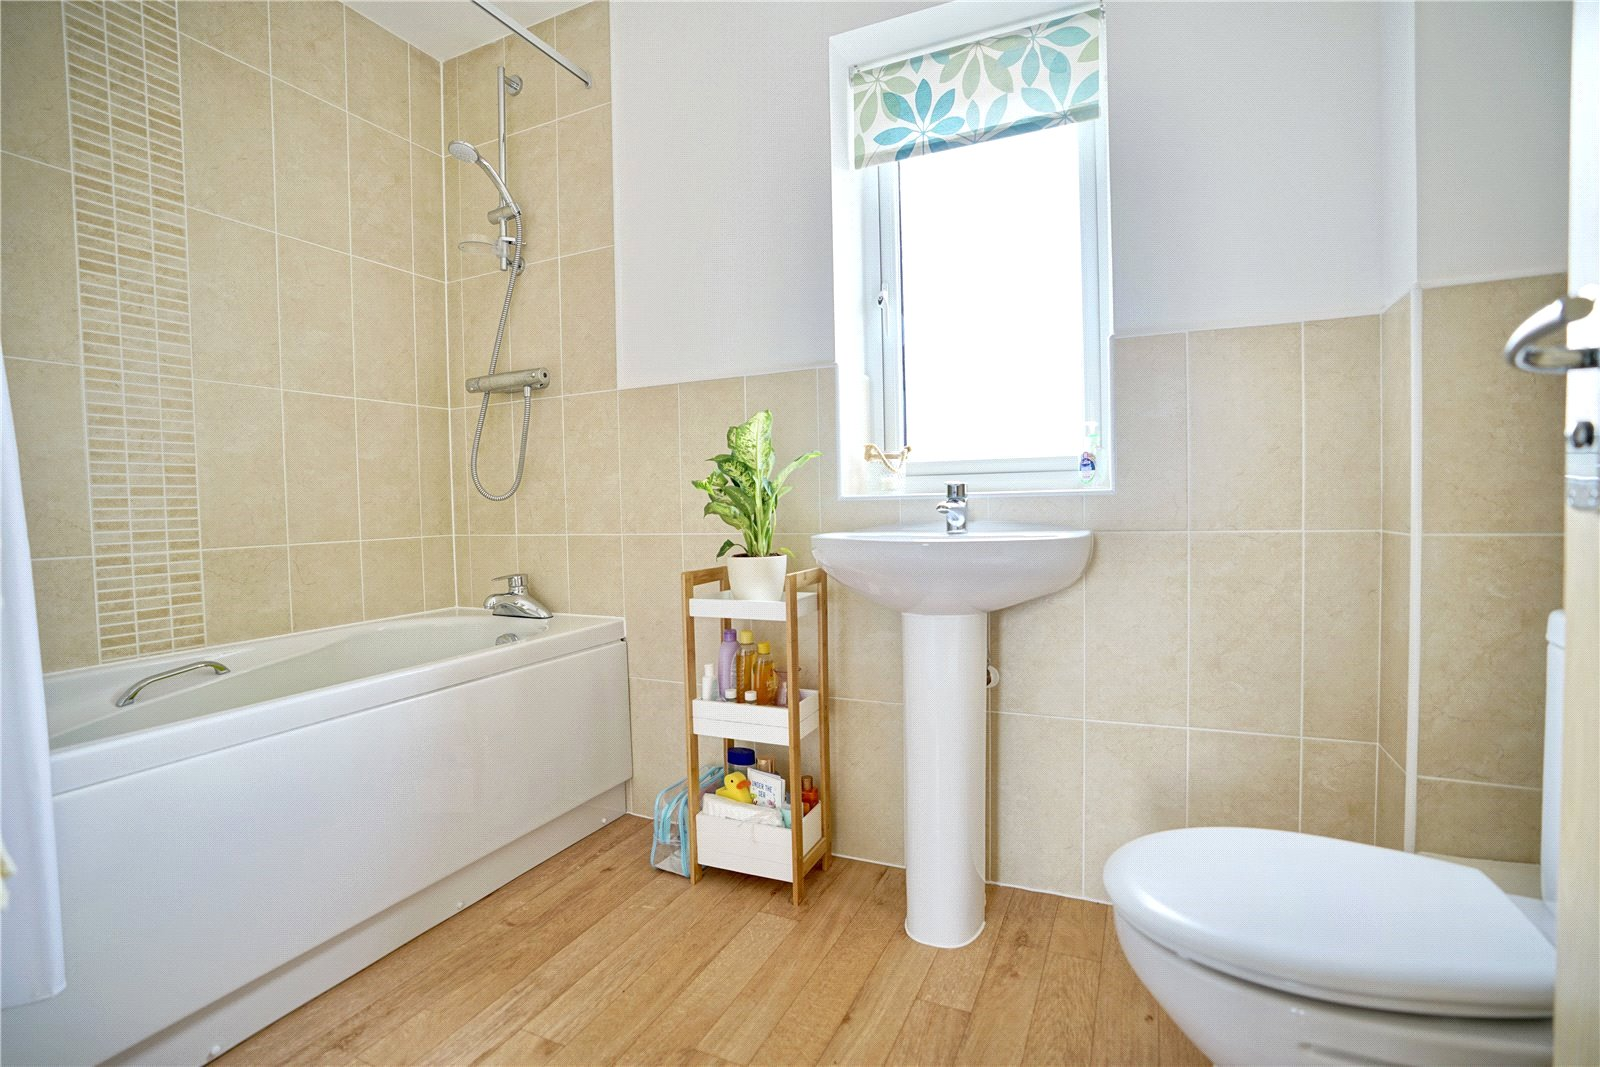 3 bed house for sale in St. Ives, PE27 5DL 9